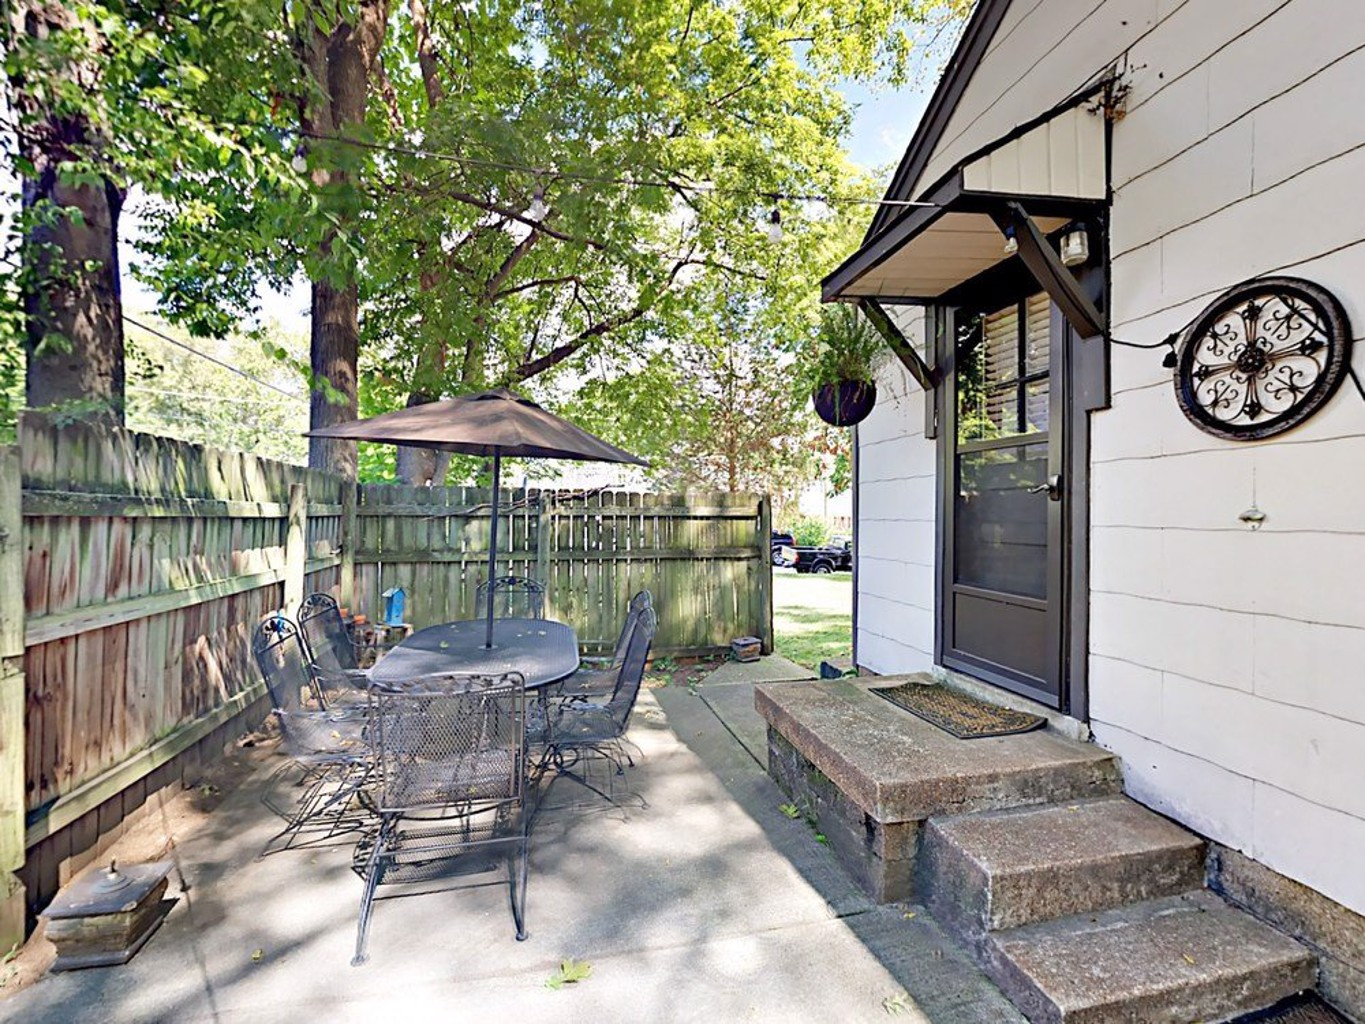 2br In Walkable & Trendy Locale 2 Bedroom Home